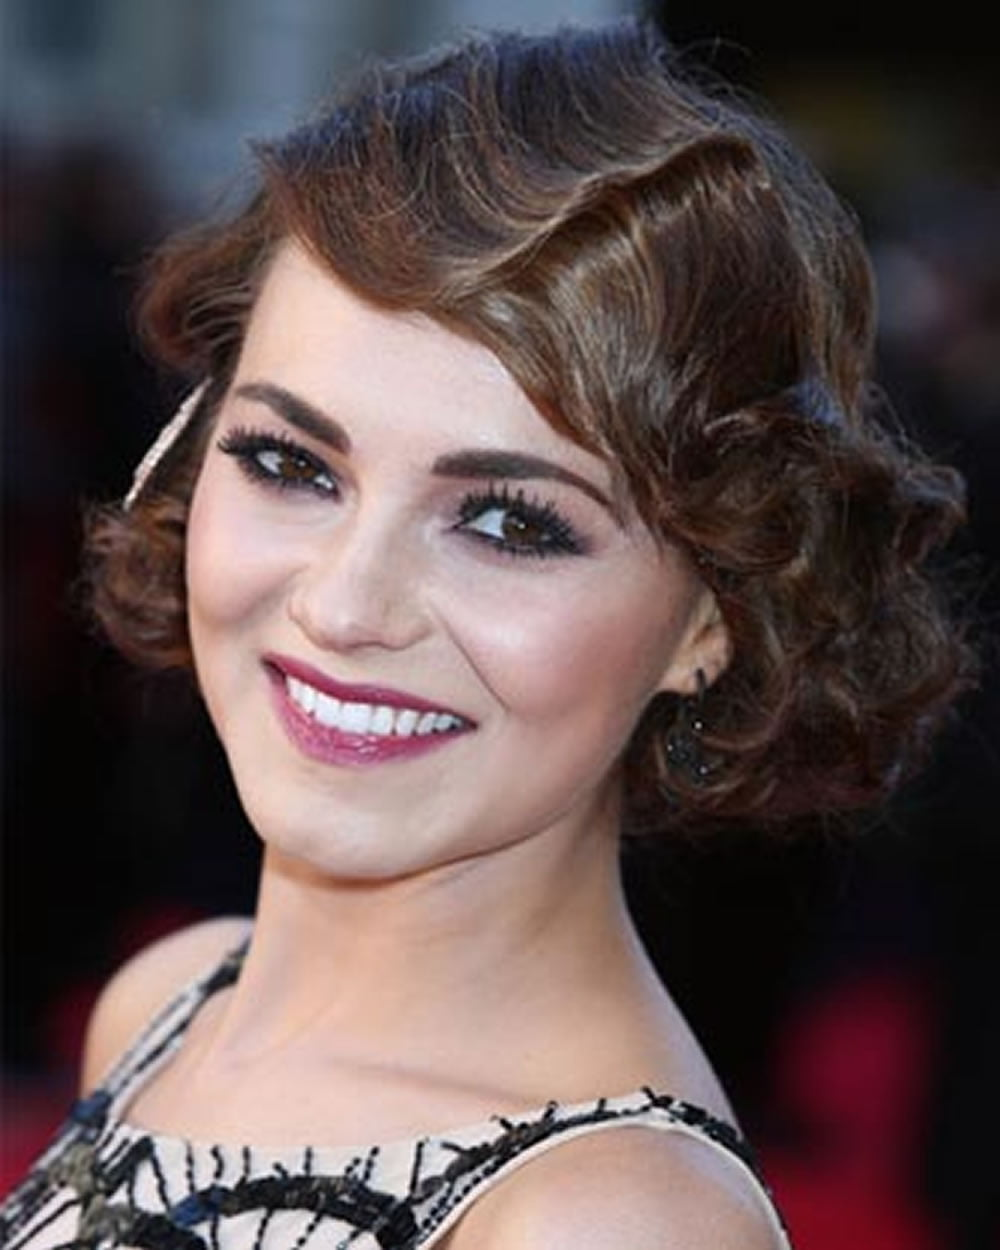 Hairstyle: 25 Modern Finger Wave Short Bob Haircut & Hairstyle Images